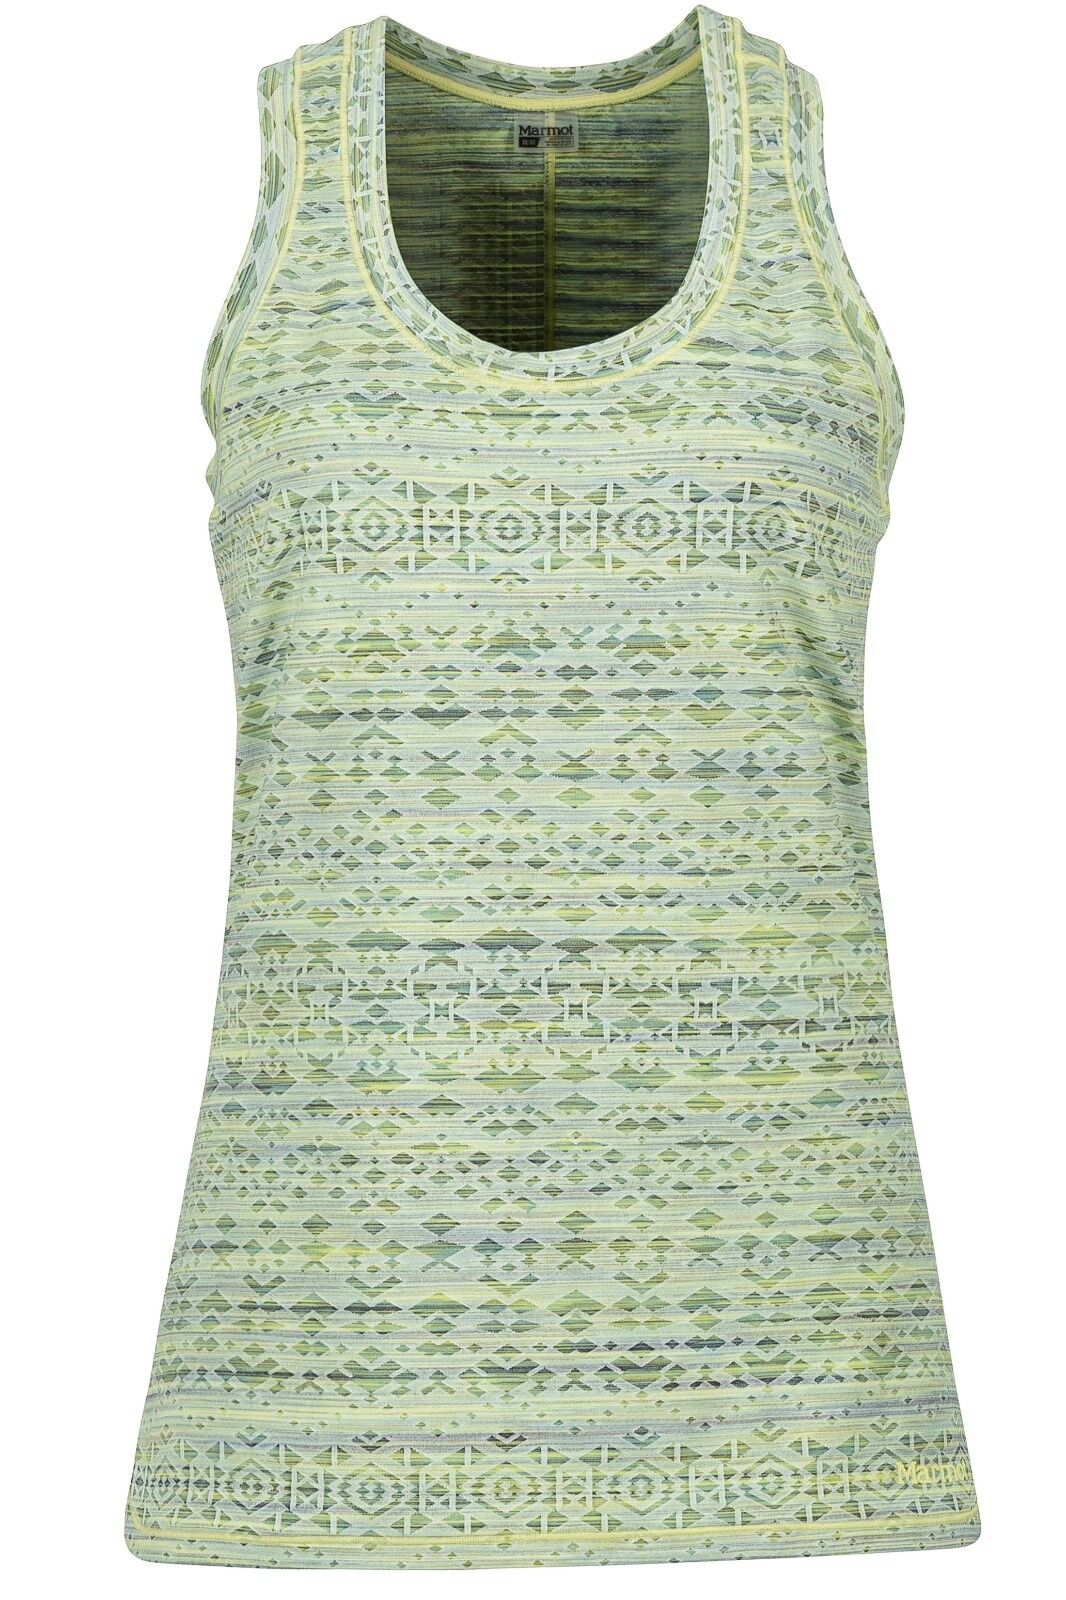 Marmot Women's Elana Tank, Climbing-Top, Sports Top, Honeydew, SIZE M